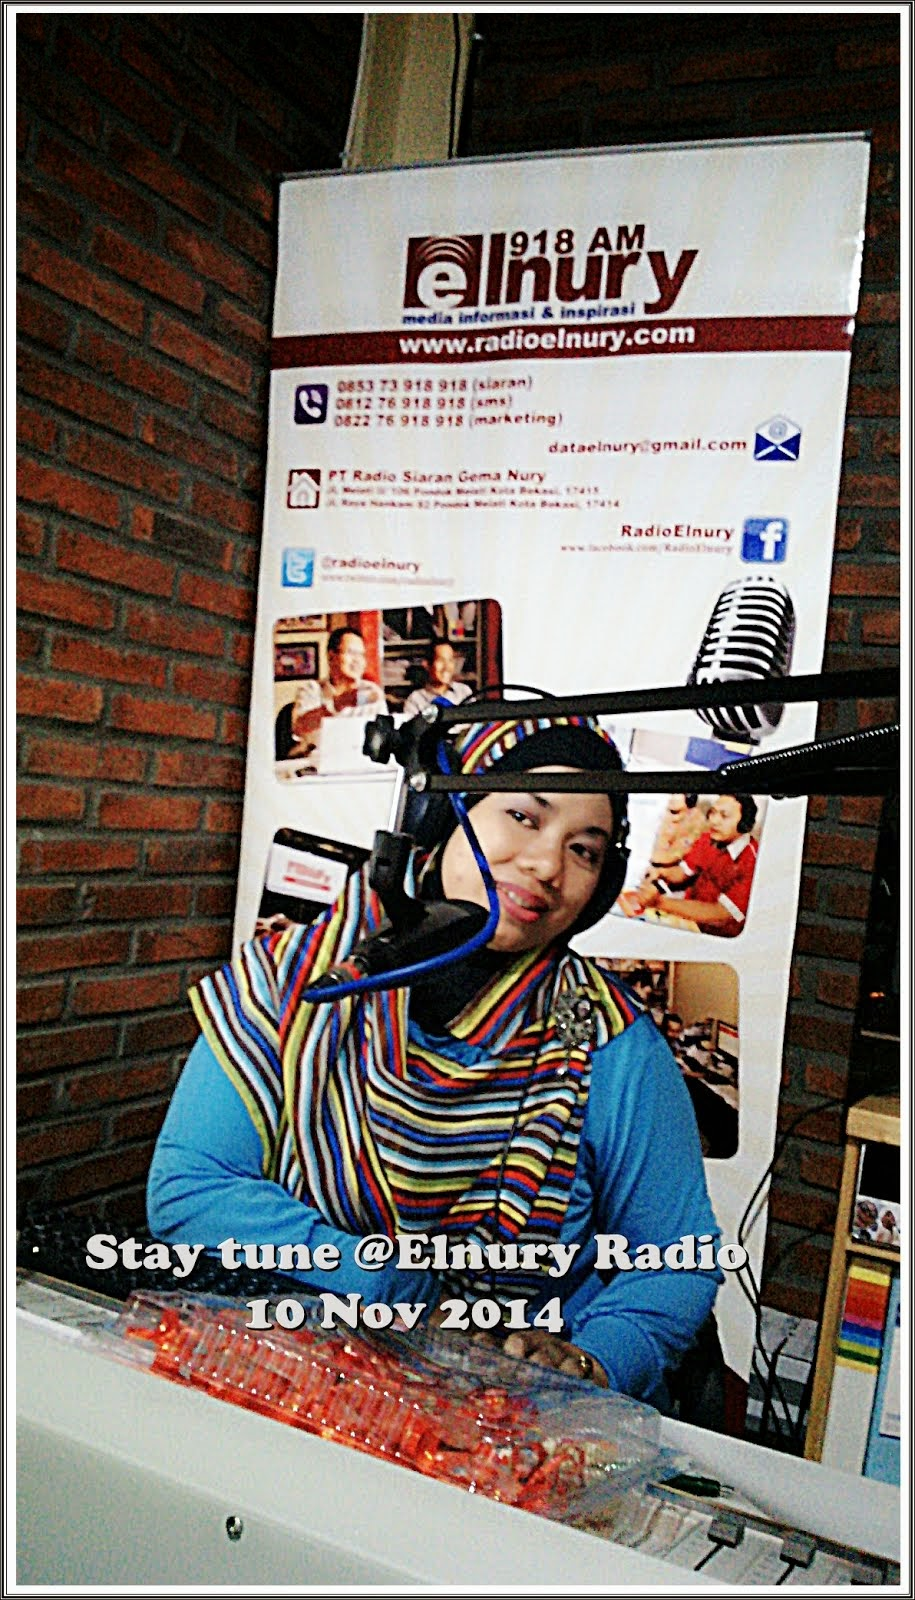 Stay tune @Elnuri Radio